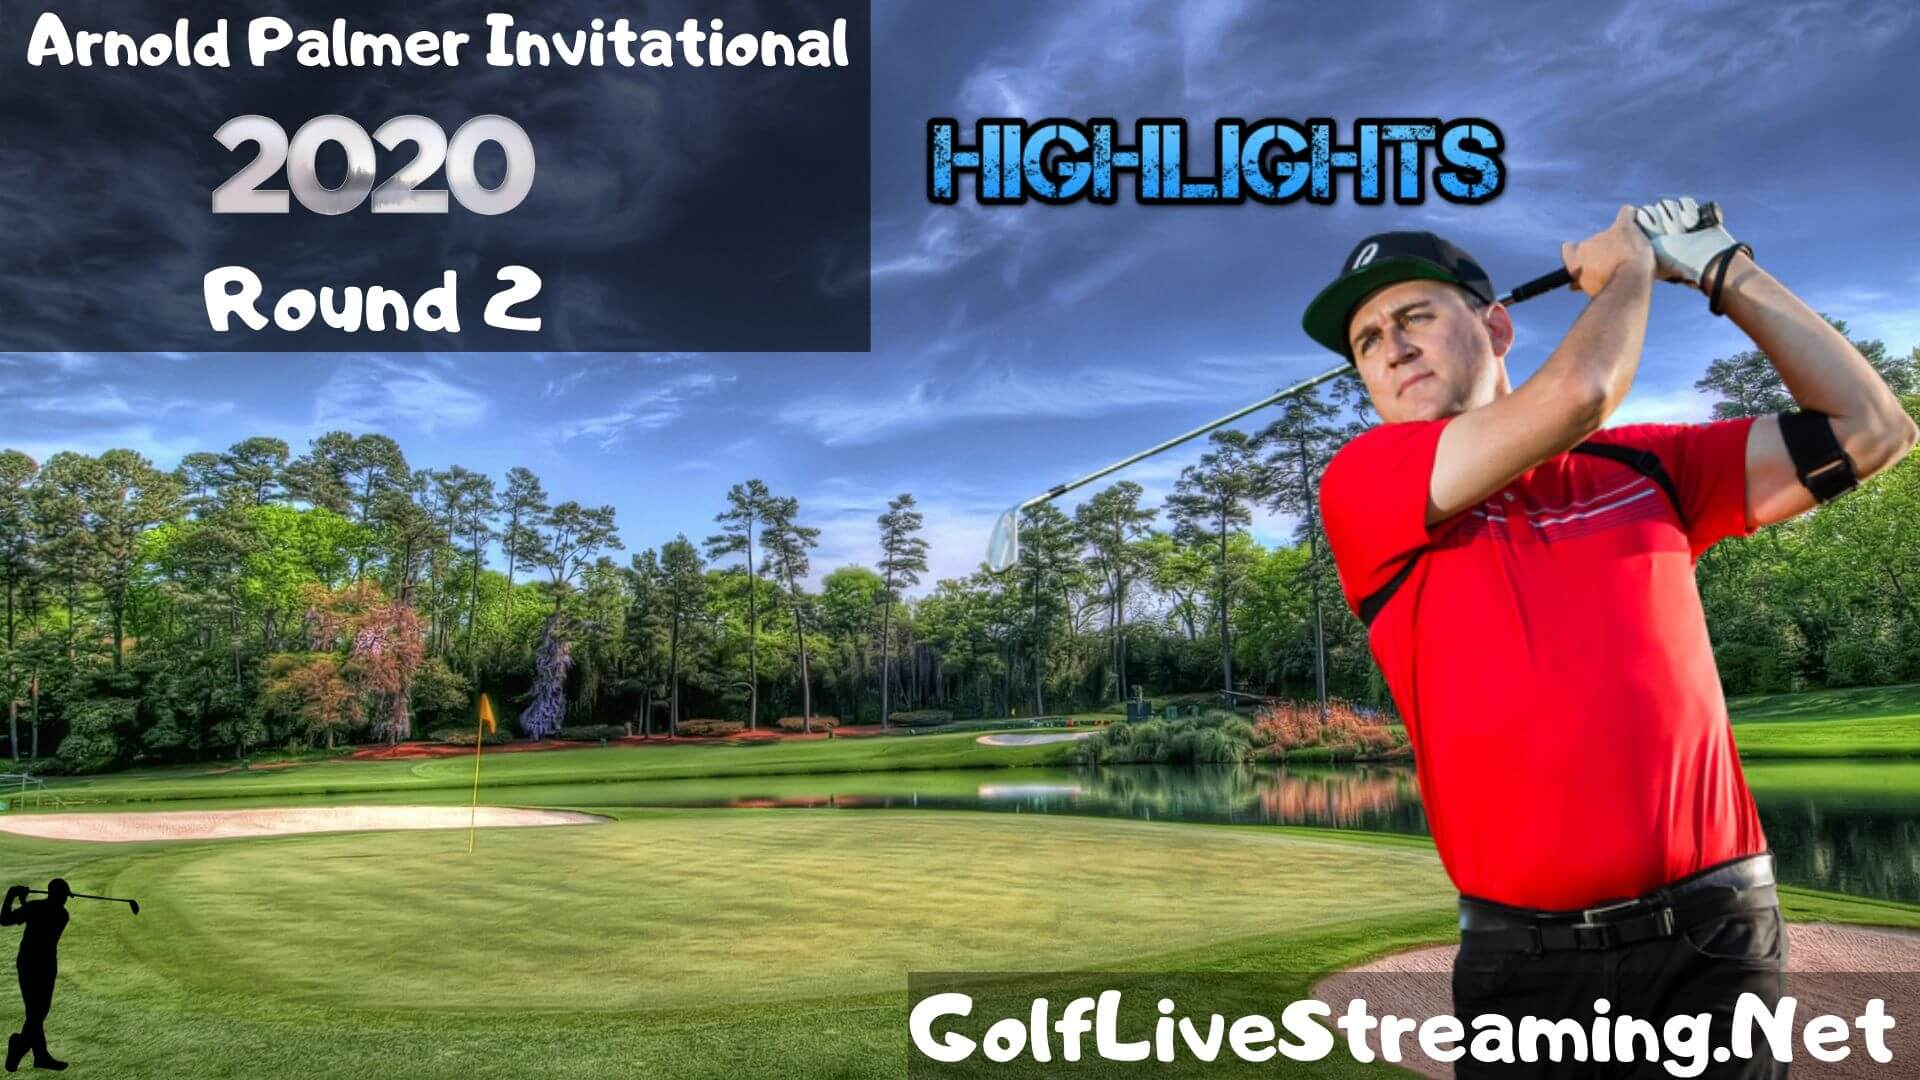 Arnold Palmer Invitational Rd 2 Highlights 2020